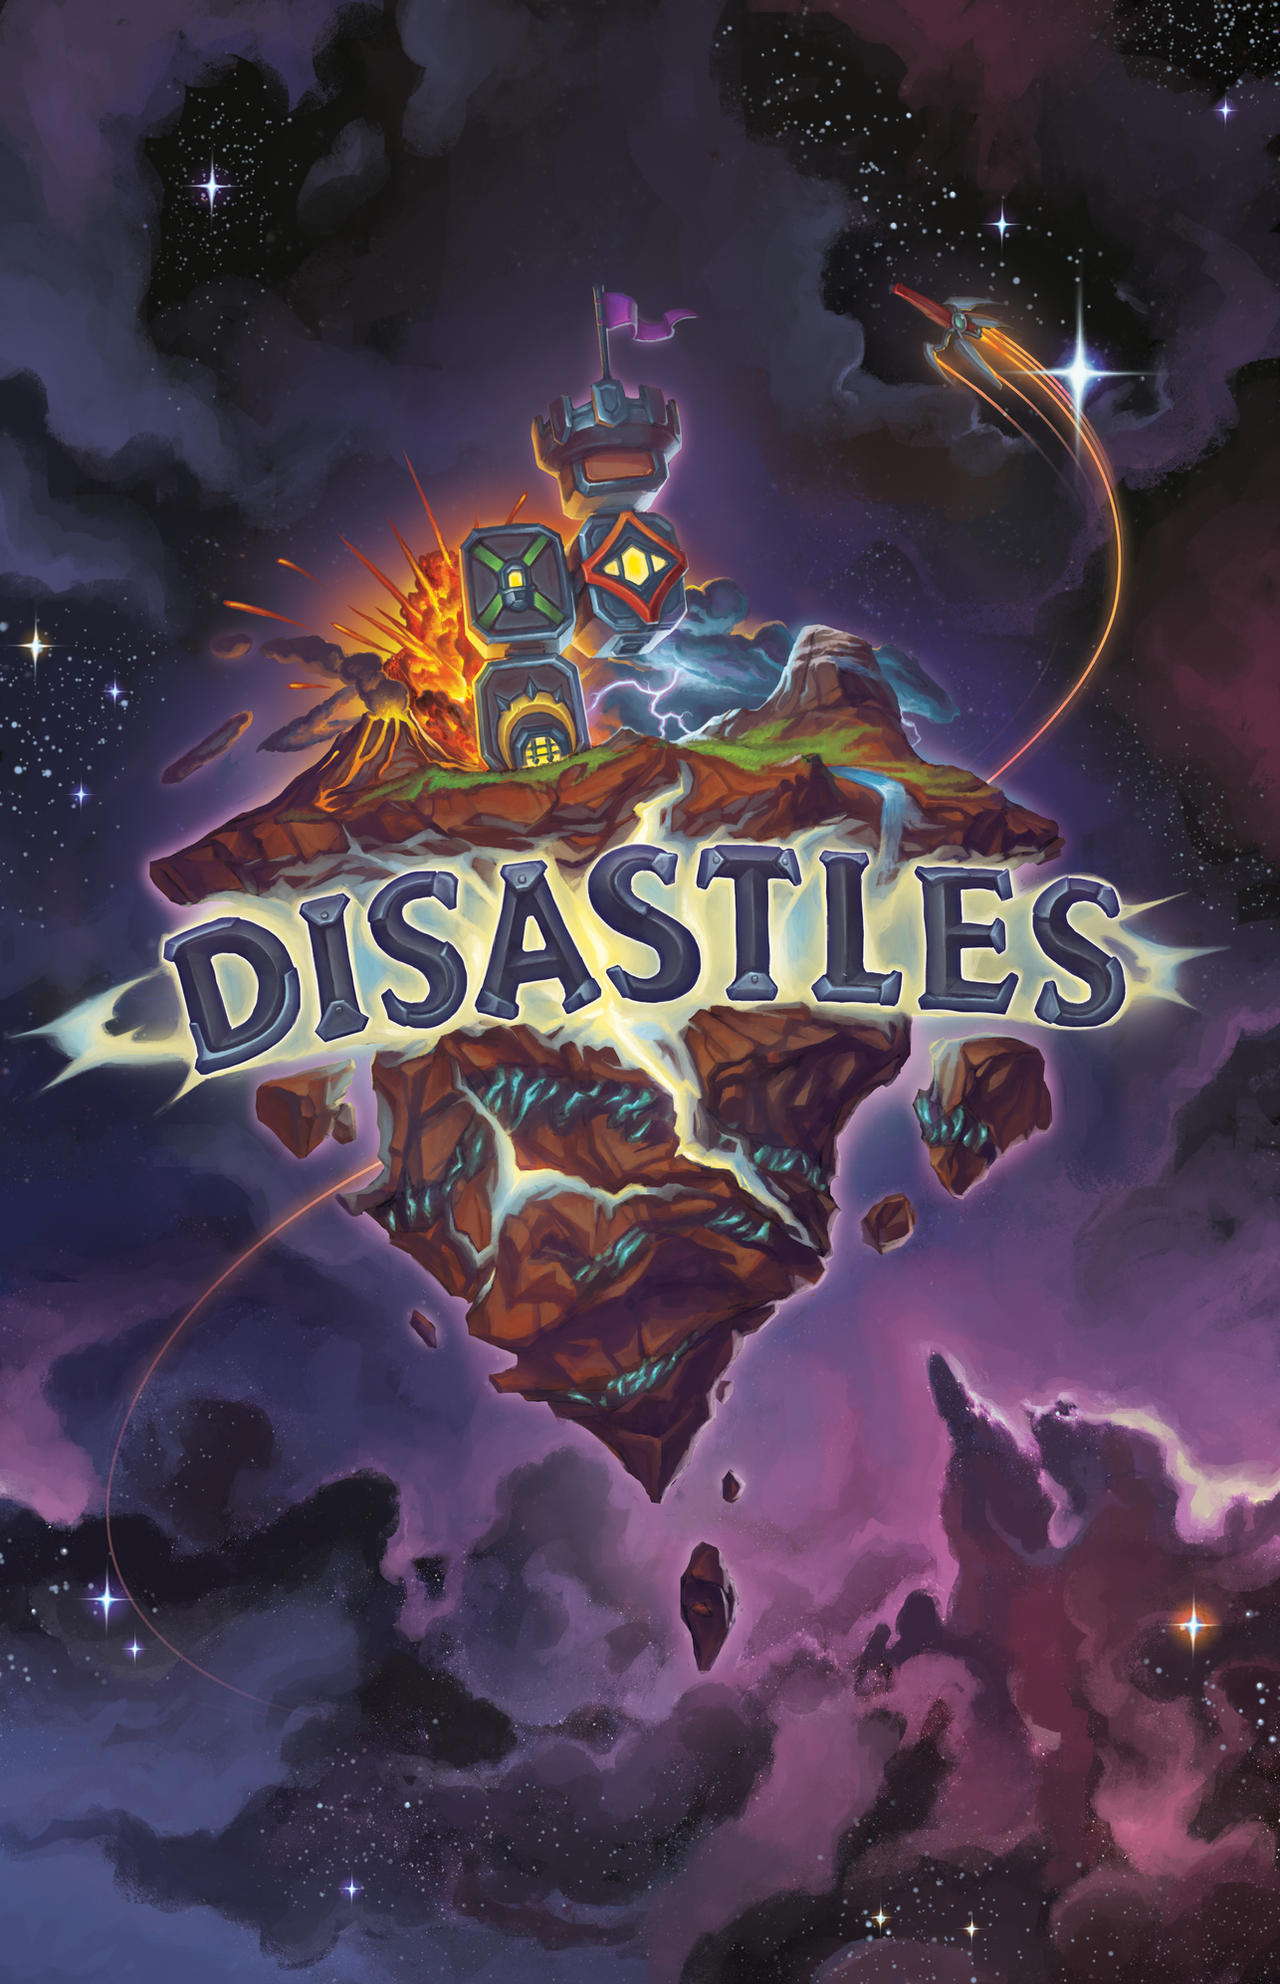 DISASTLES Cover Art by Steamhat